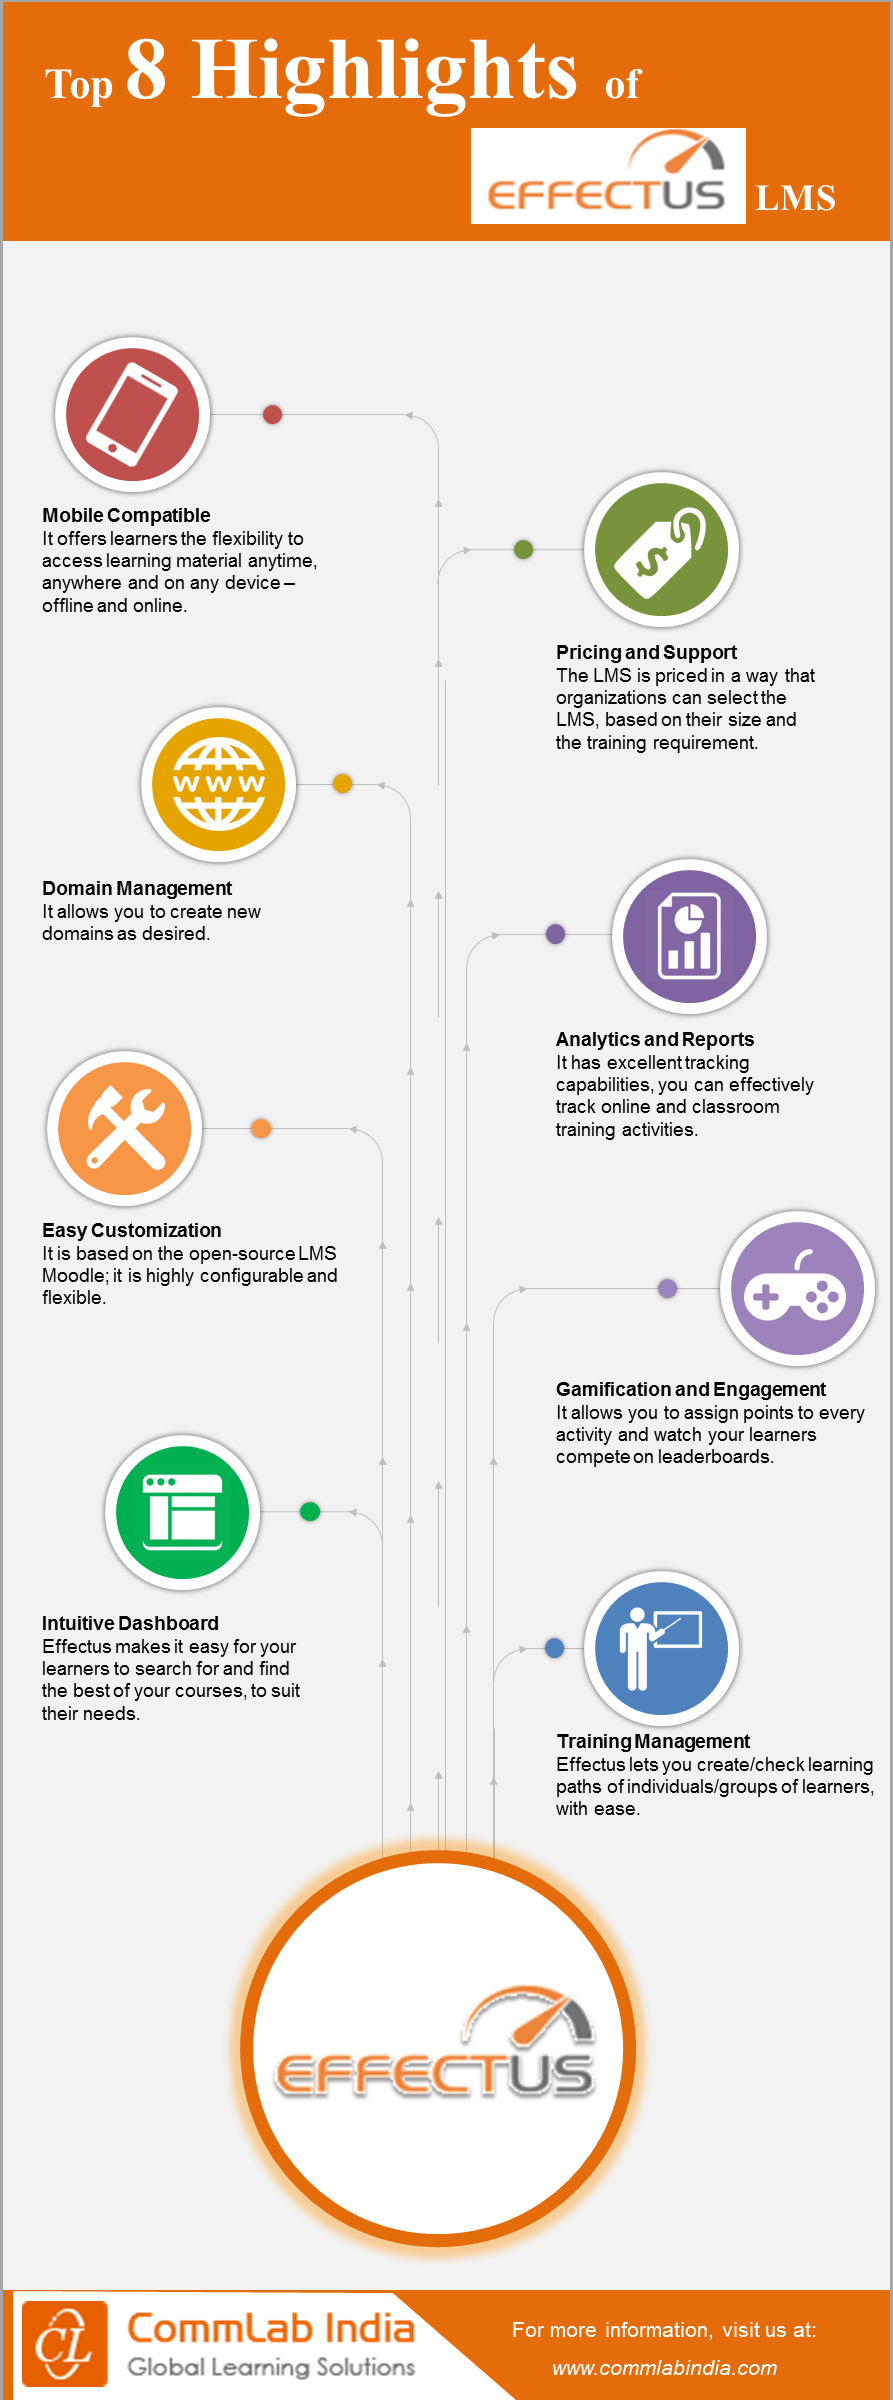 Top 8 Highlights of Effectus LMS [Infographic]